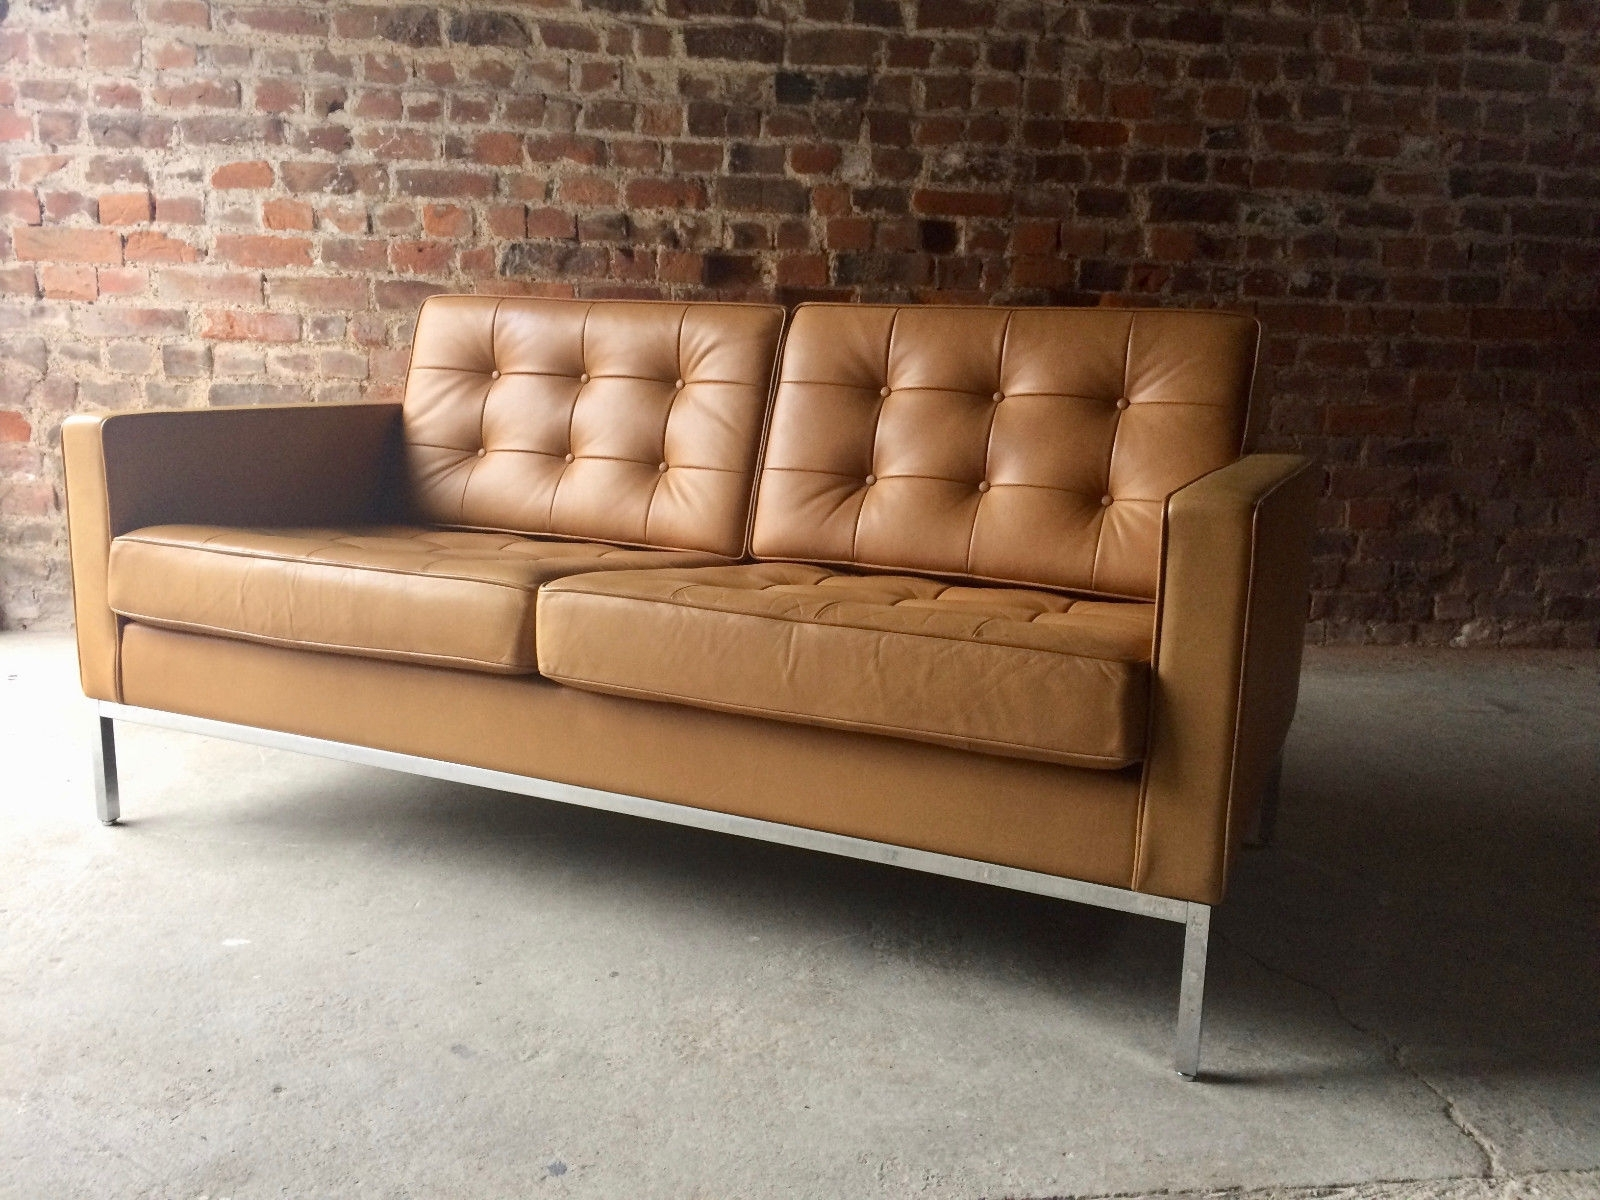 Fashionable Florence Leather Sofas In Vintage 2 Seater Leather Sofaflorence Knoll For Knoll For Sale (View 2 of 20)